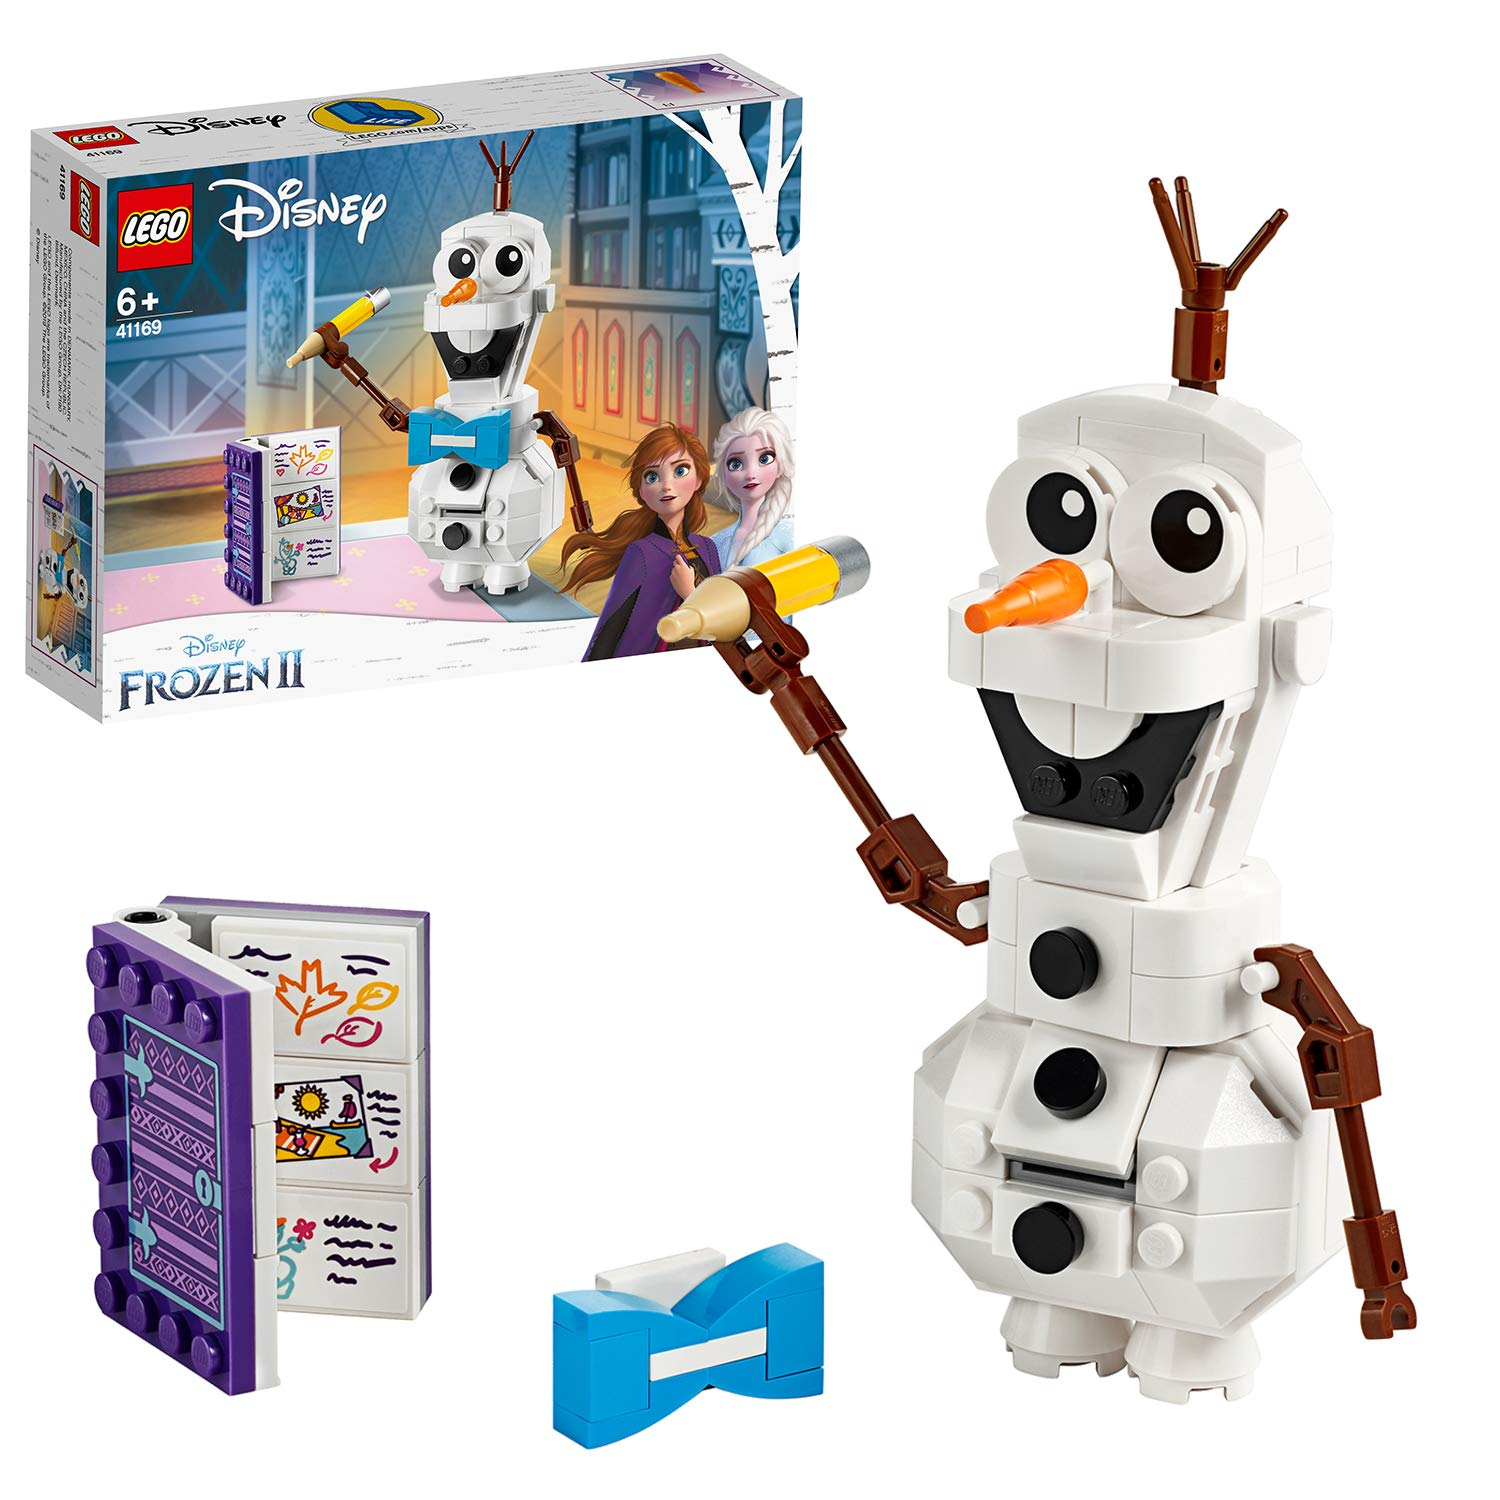 Buy LEGO 41169 Disney Frozen 2 Olaf Online at Low Prices in India ...